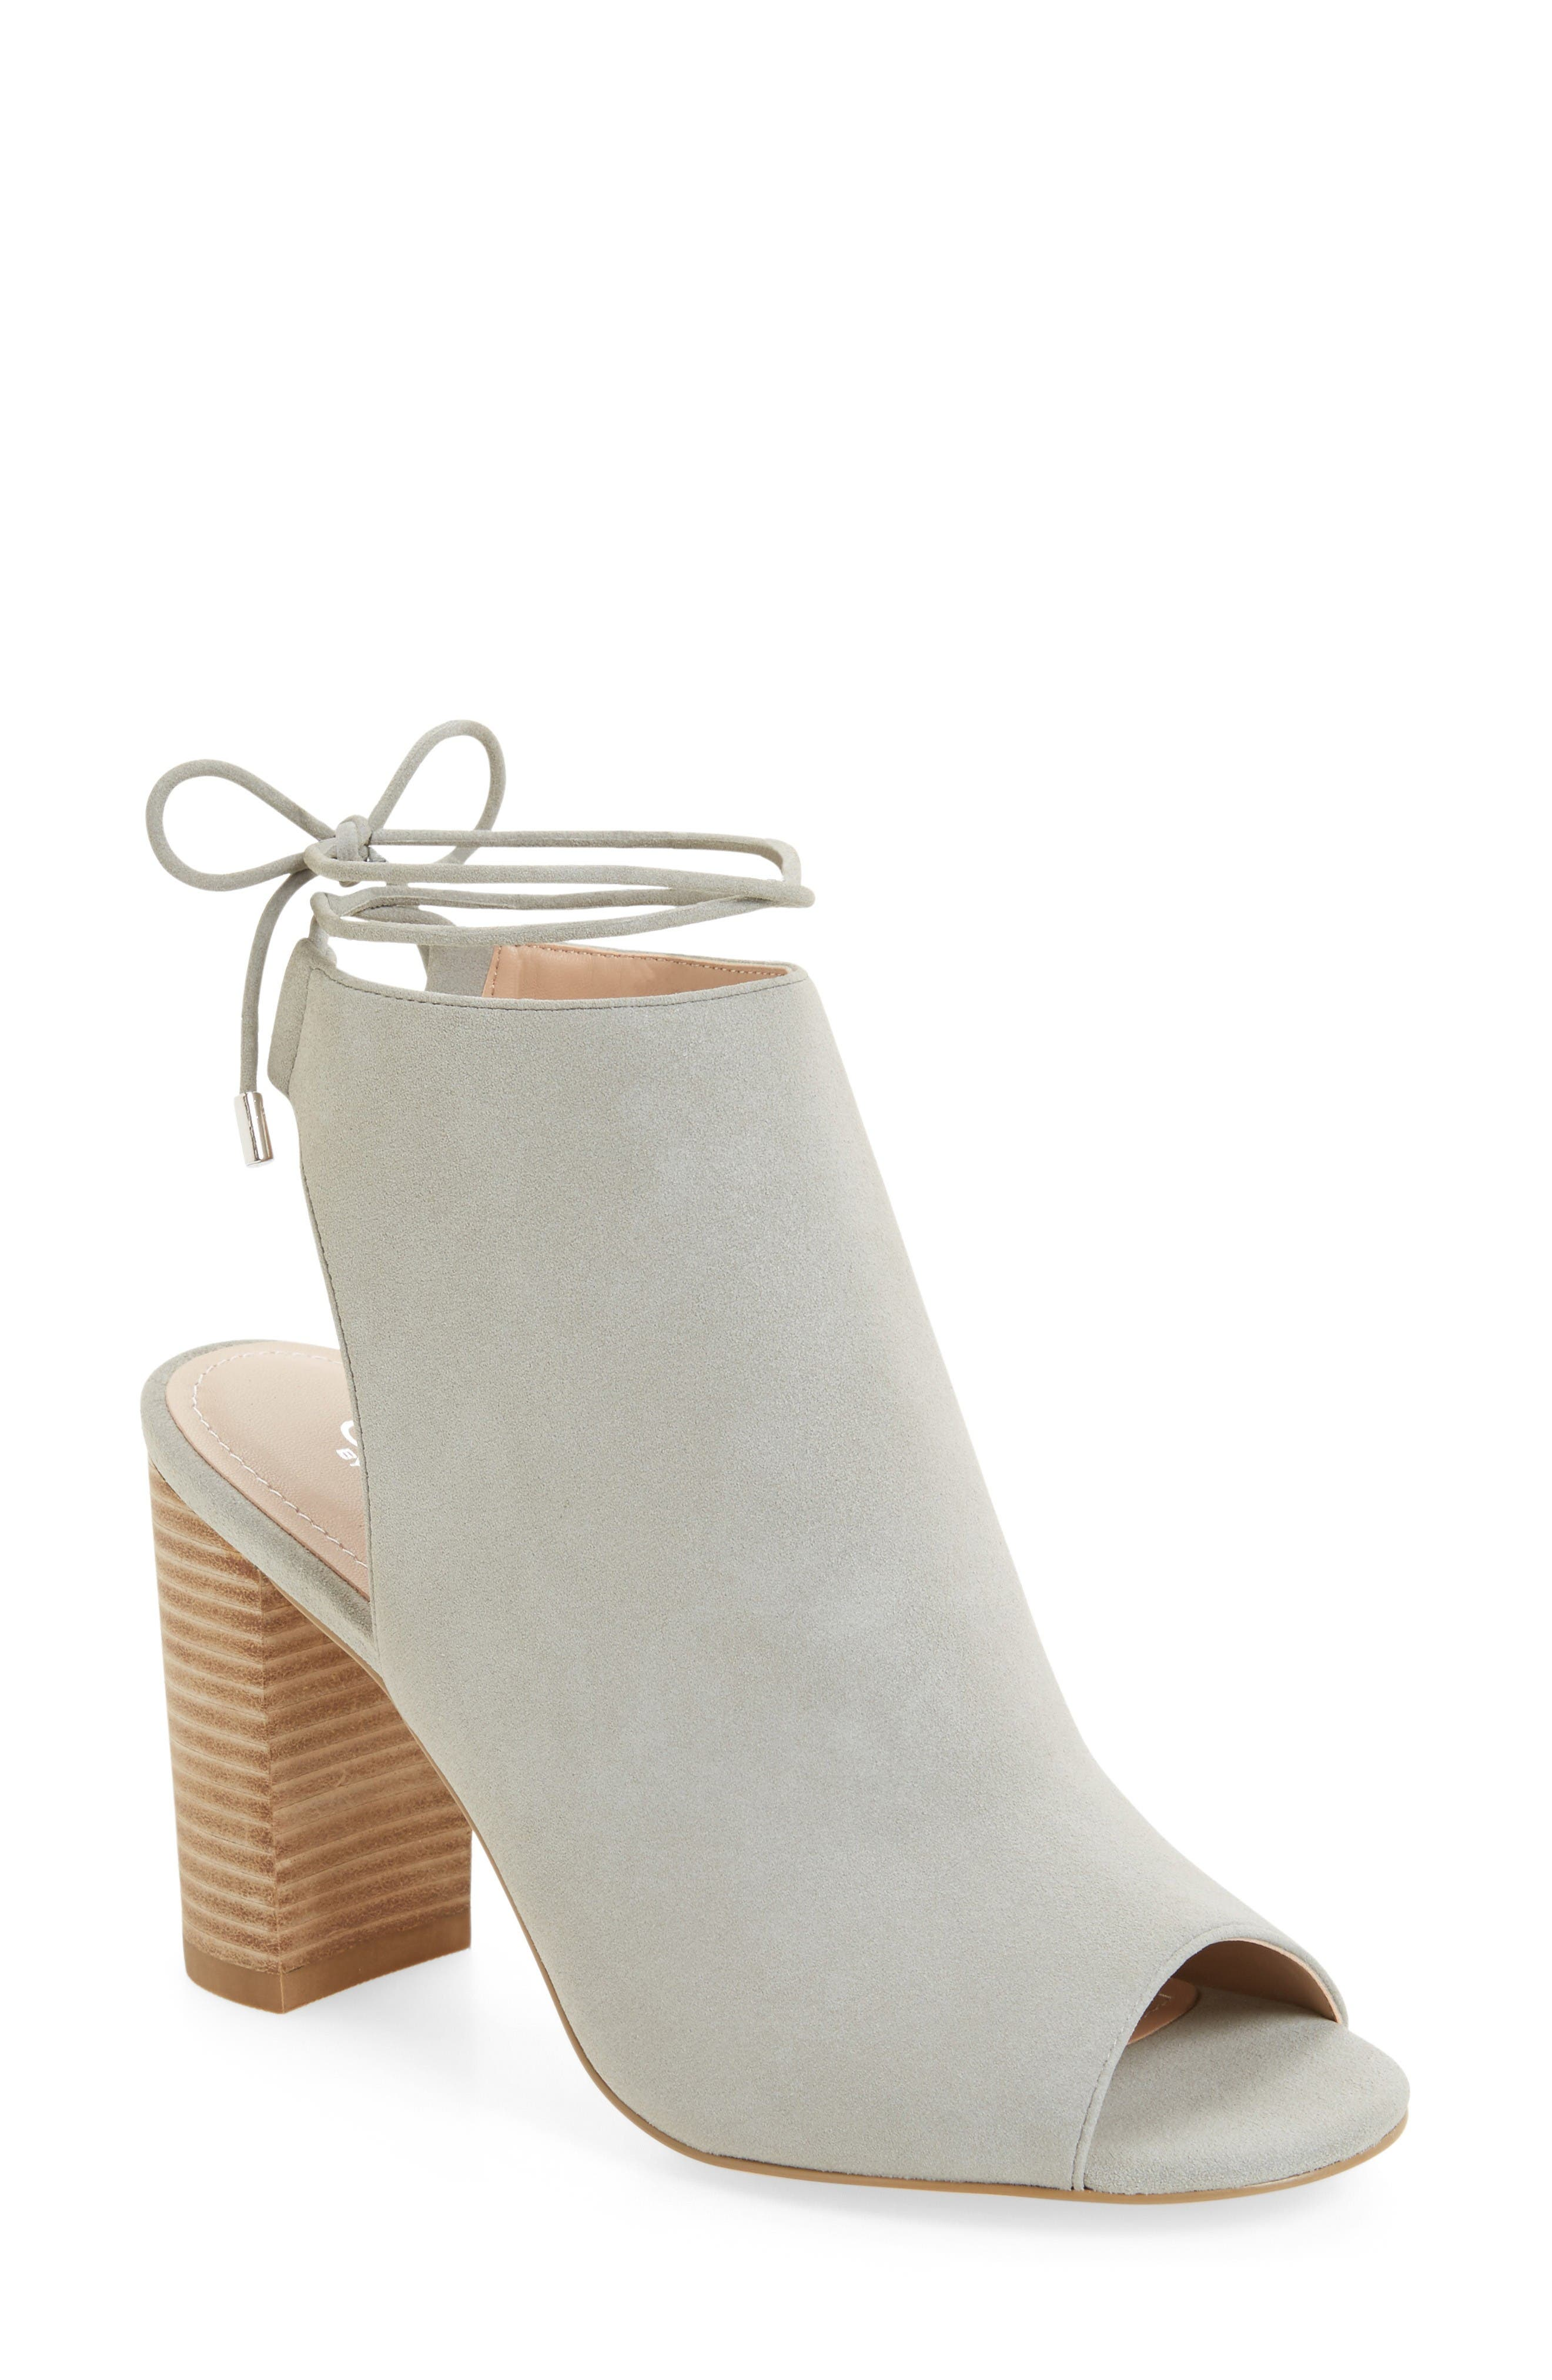 Main Image - Charles by Charles David Elista Ankle Wrap Sandal (Women)